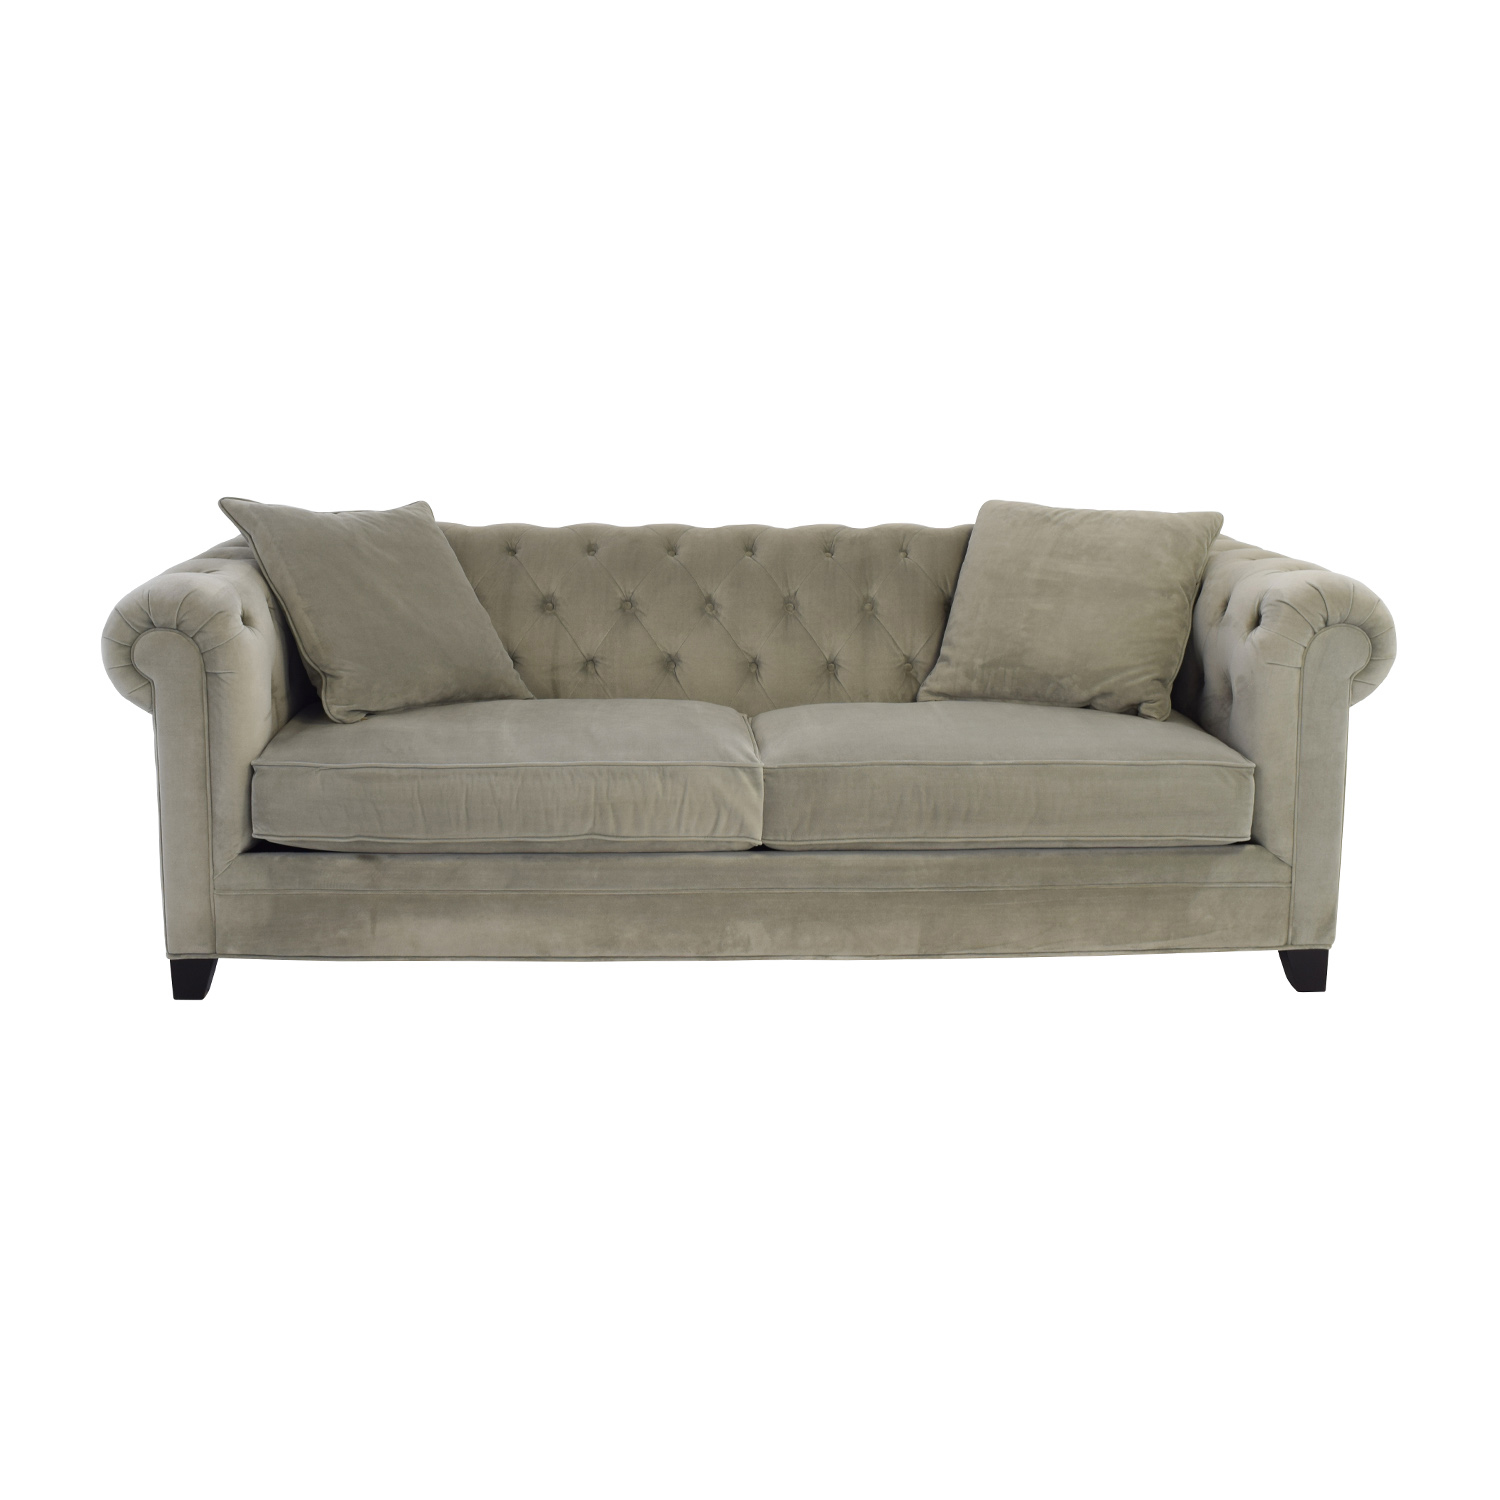 Macys Martha Stewart Collection Martha Stewart Saybridge Grey Sofa dimensions